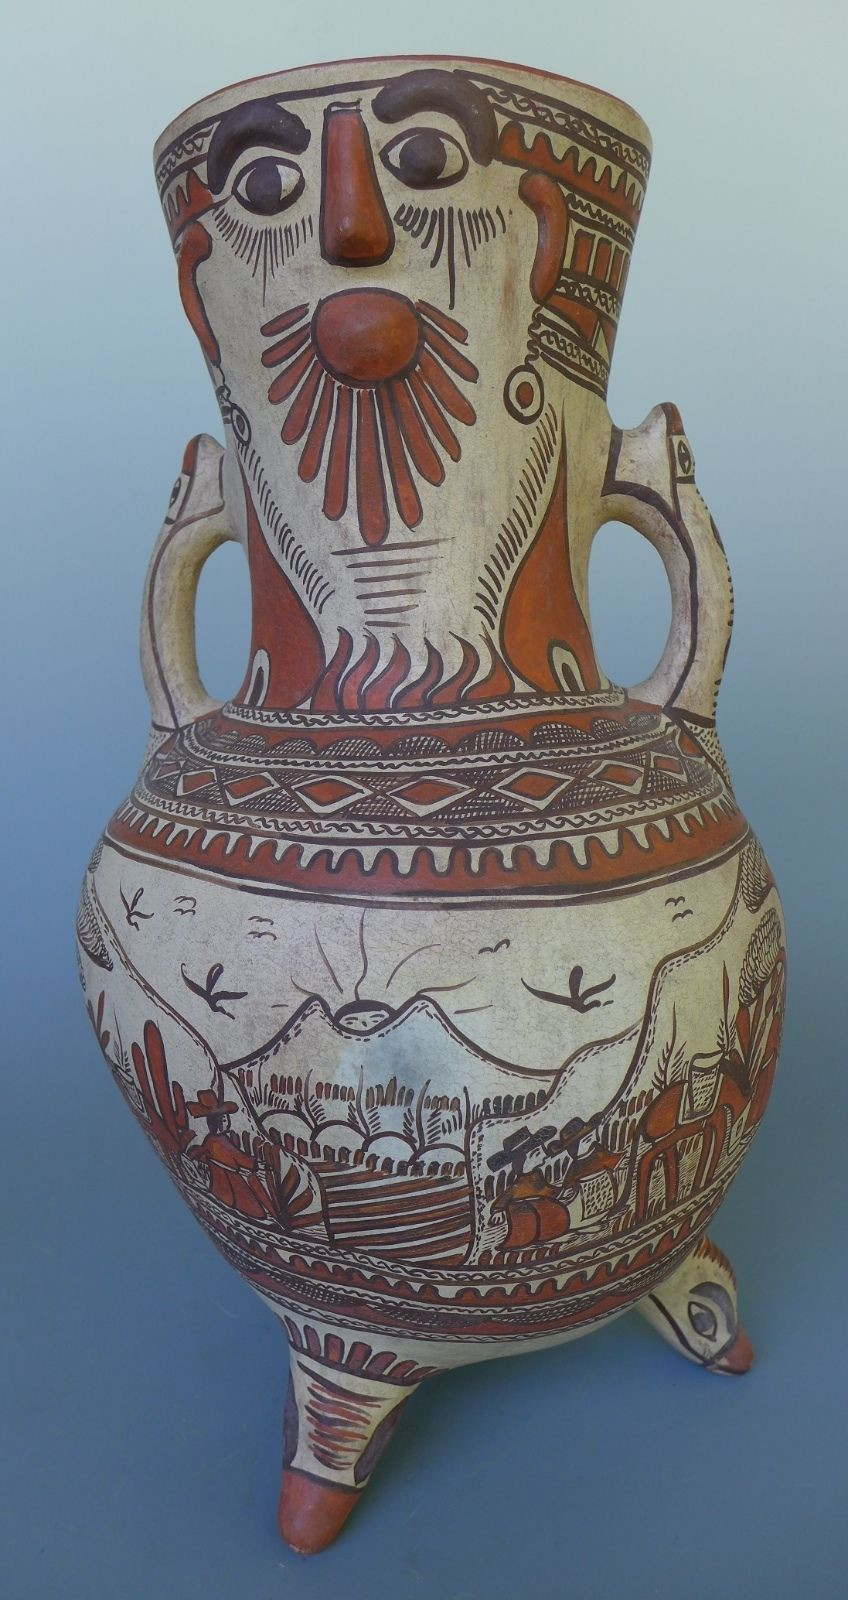 11 Stunning Mexican Pottery Vase 2021 free download mexican pottery vase of xl mexican pottery guerrero ameyaltepec ceramic tri pod urn 15 1 2 inside xl mexican pottery guerrero ameyaltepec ceramic tri pod urn 15 1 2 tall ebay